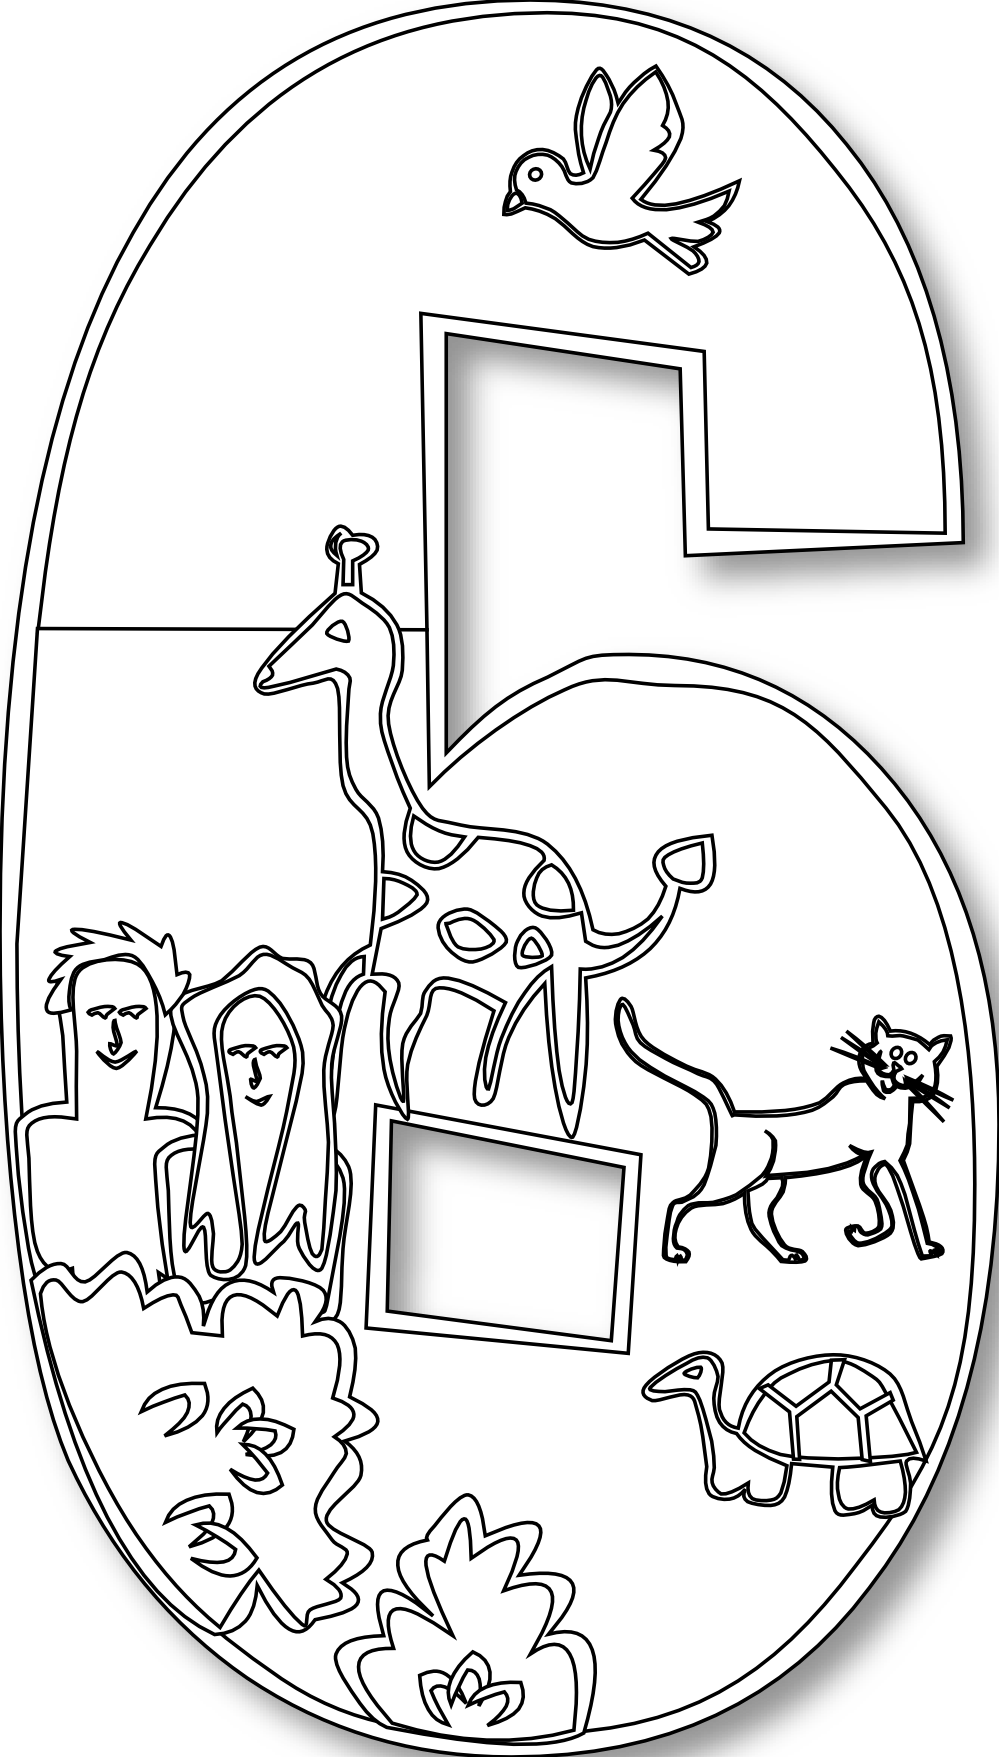 Creation drawing. Number clipart black and